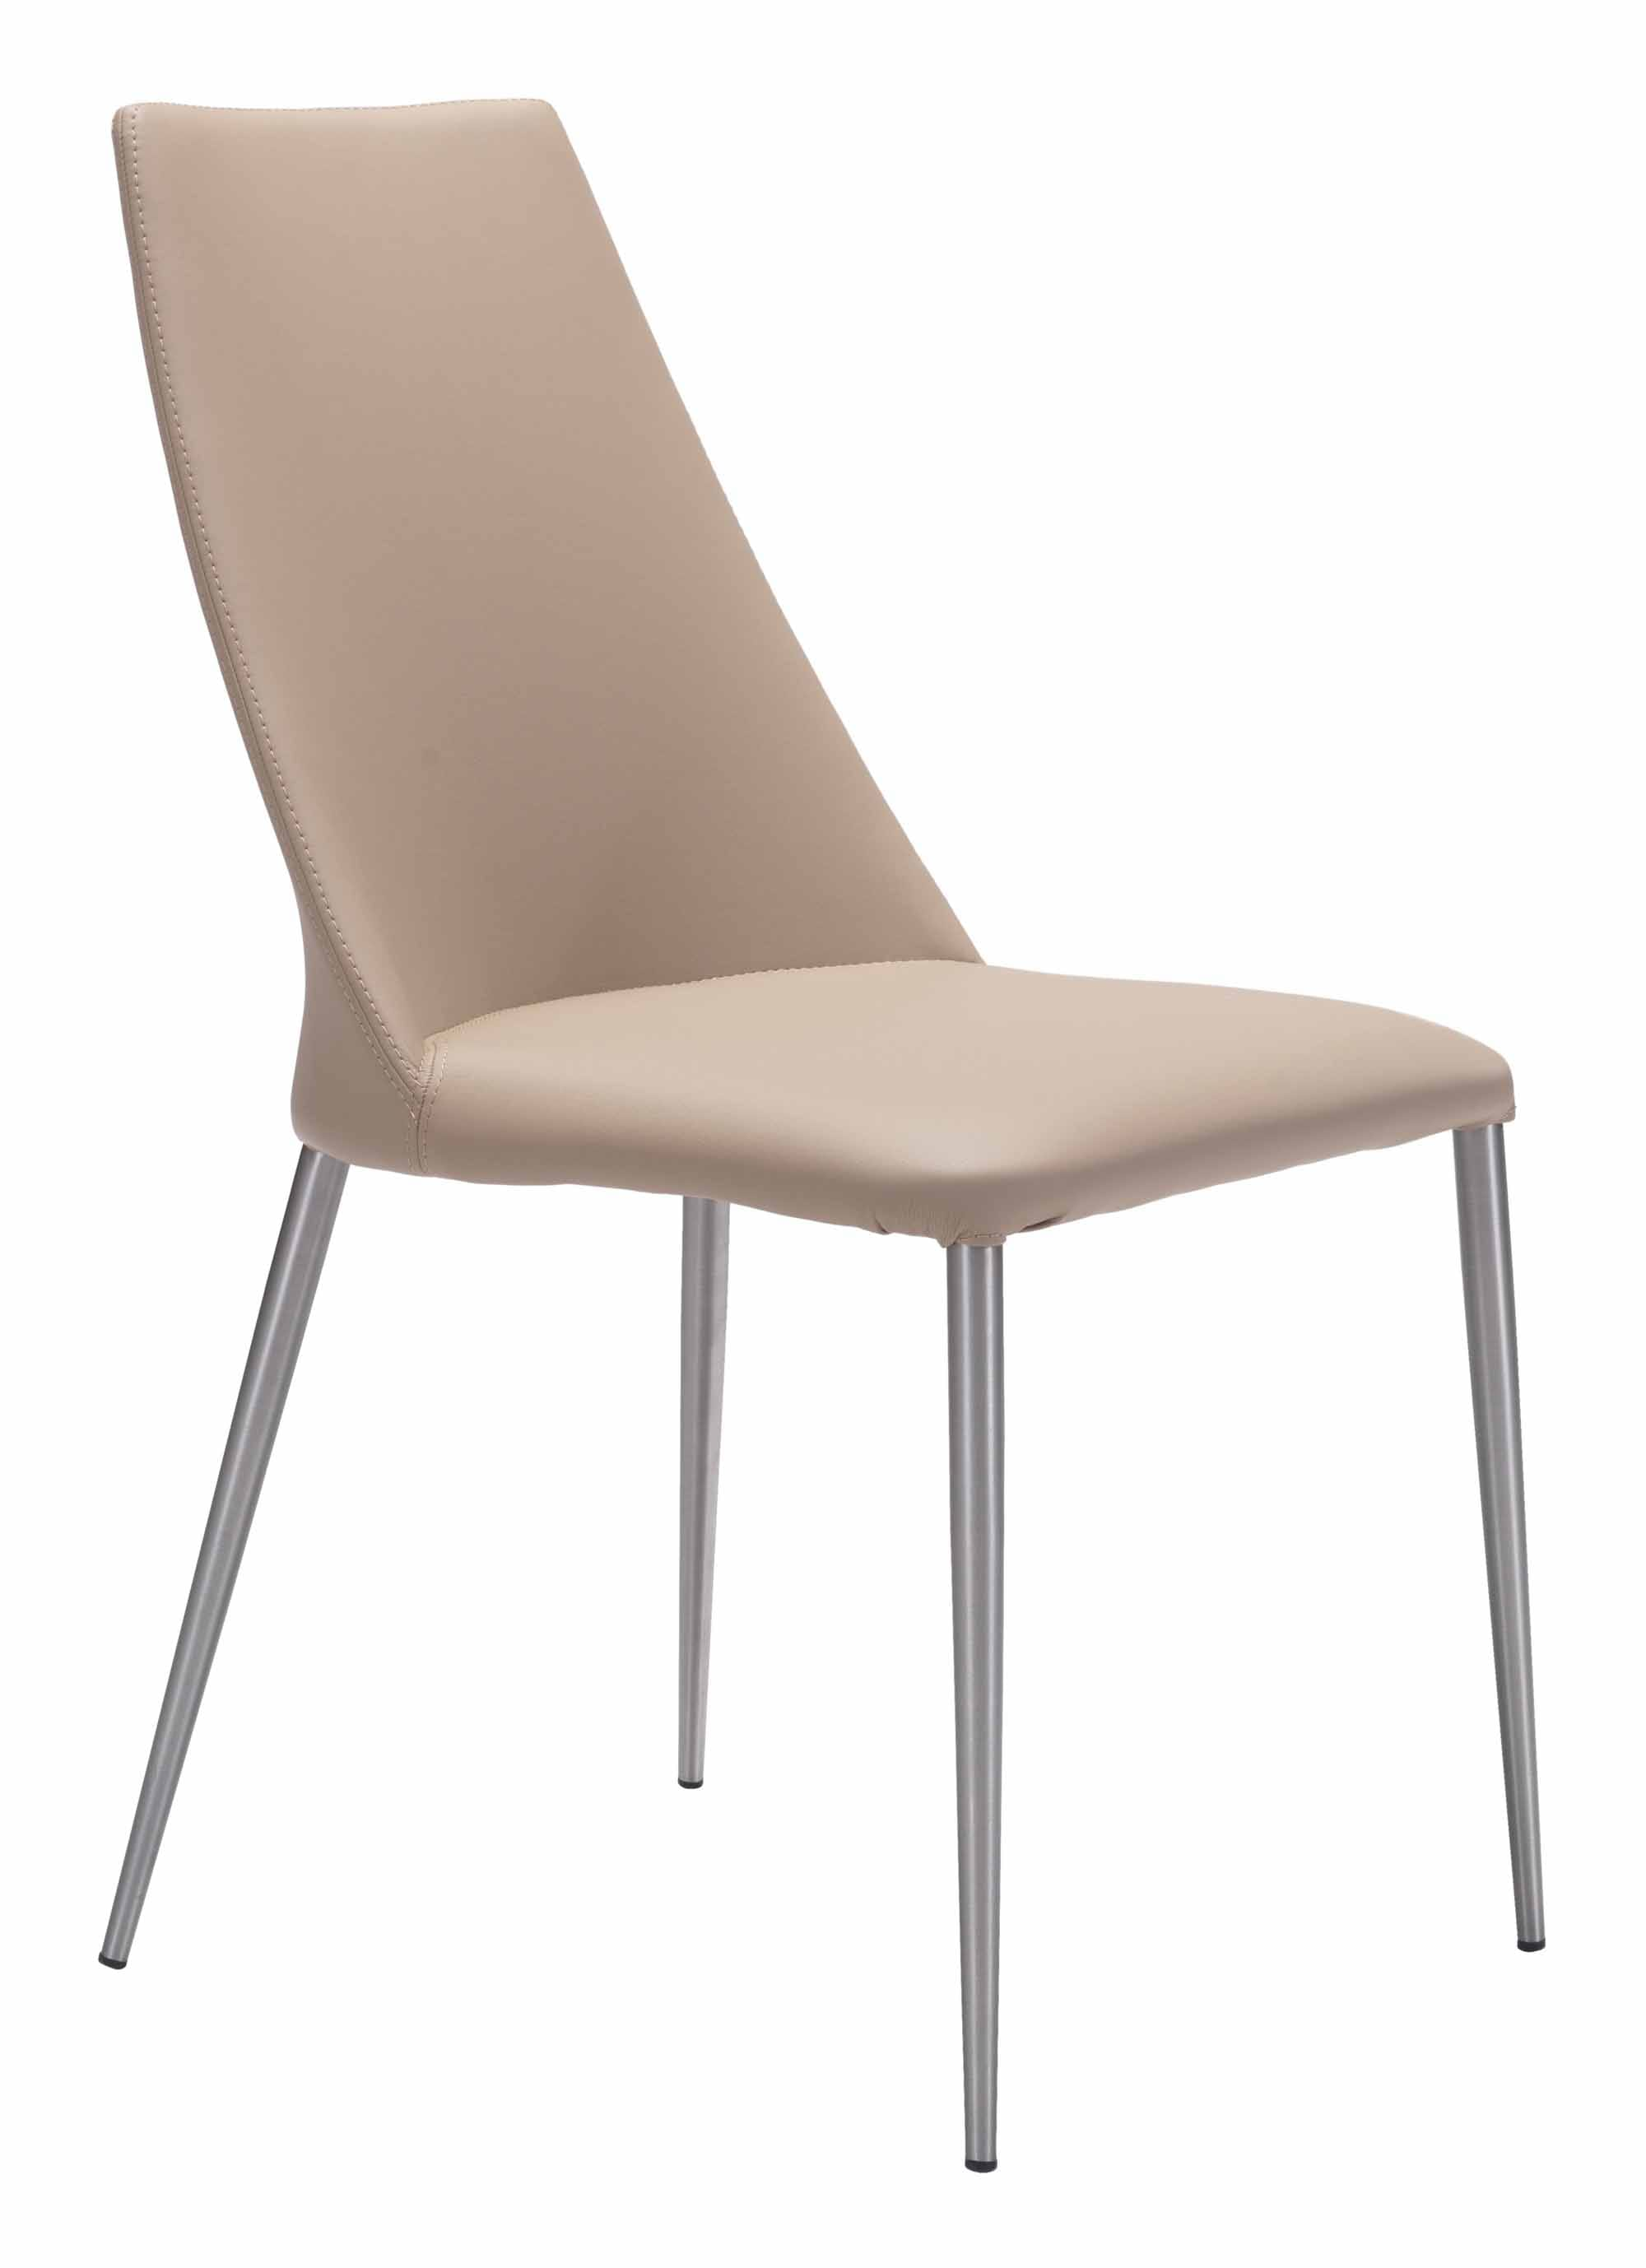 beige dining chairs very cheap chair covers whisp set of 2 by zuo modern